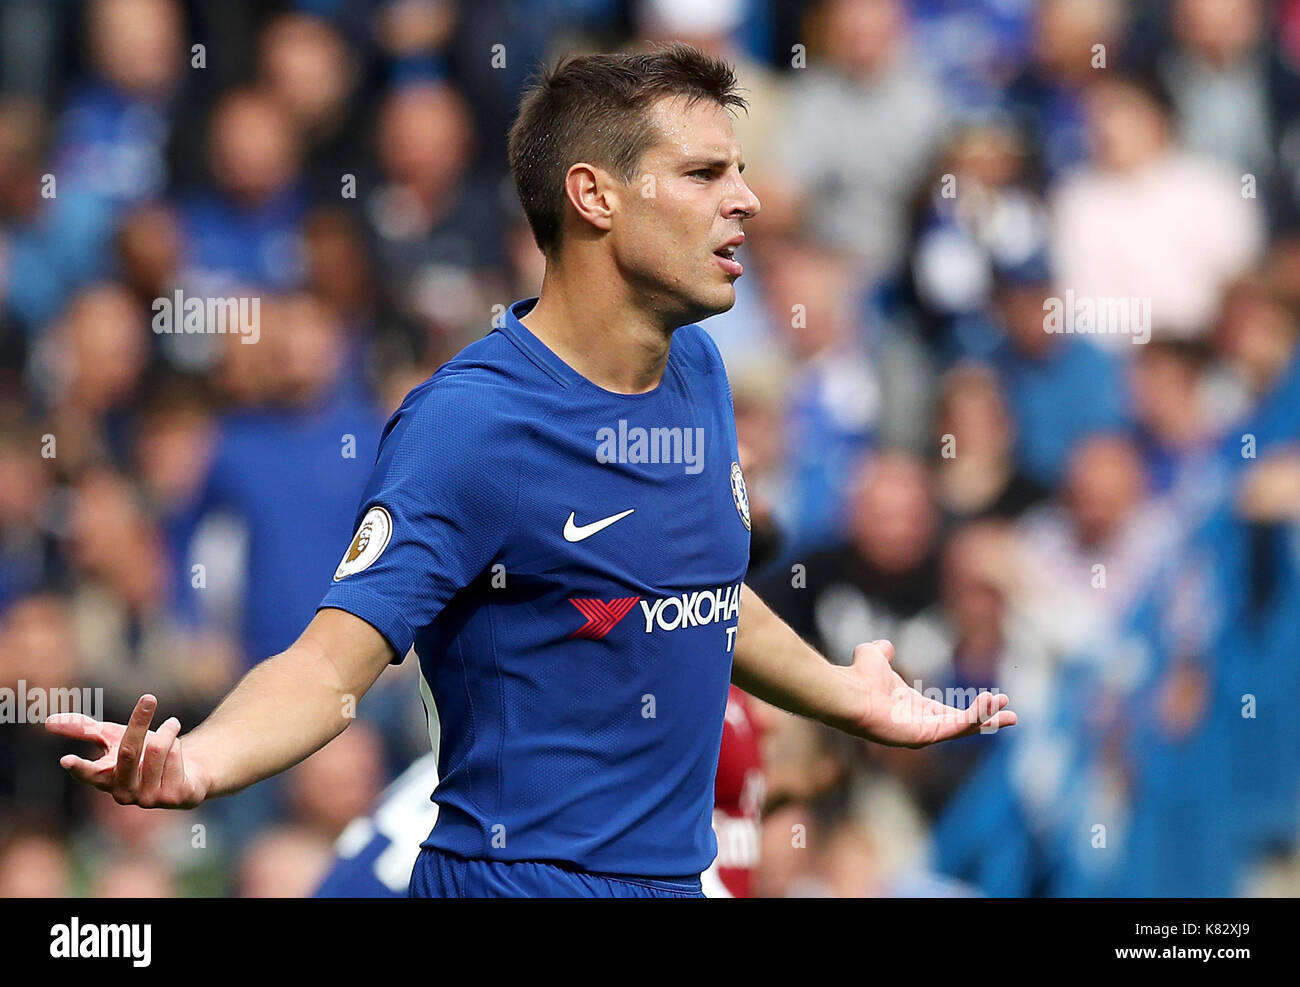 Chelsea s Cesar Azpilicueta during the Premier League match at